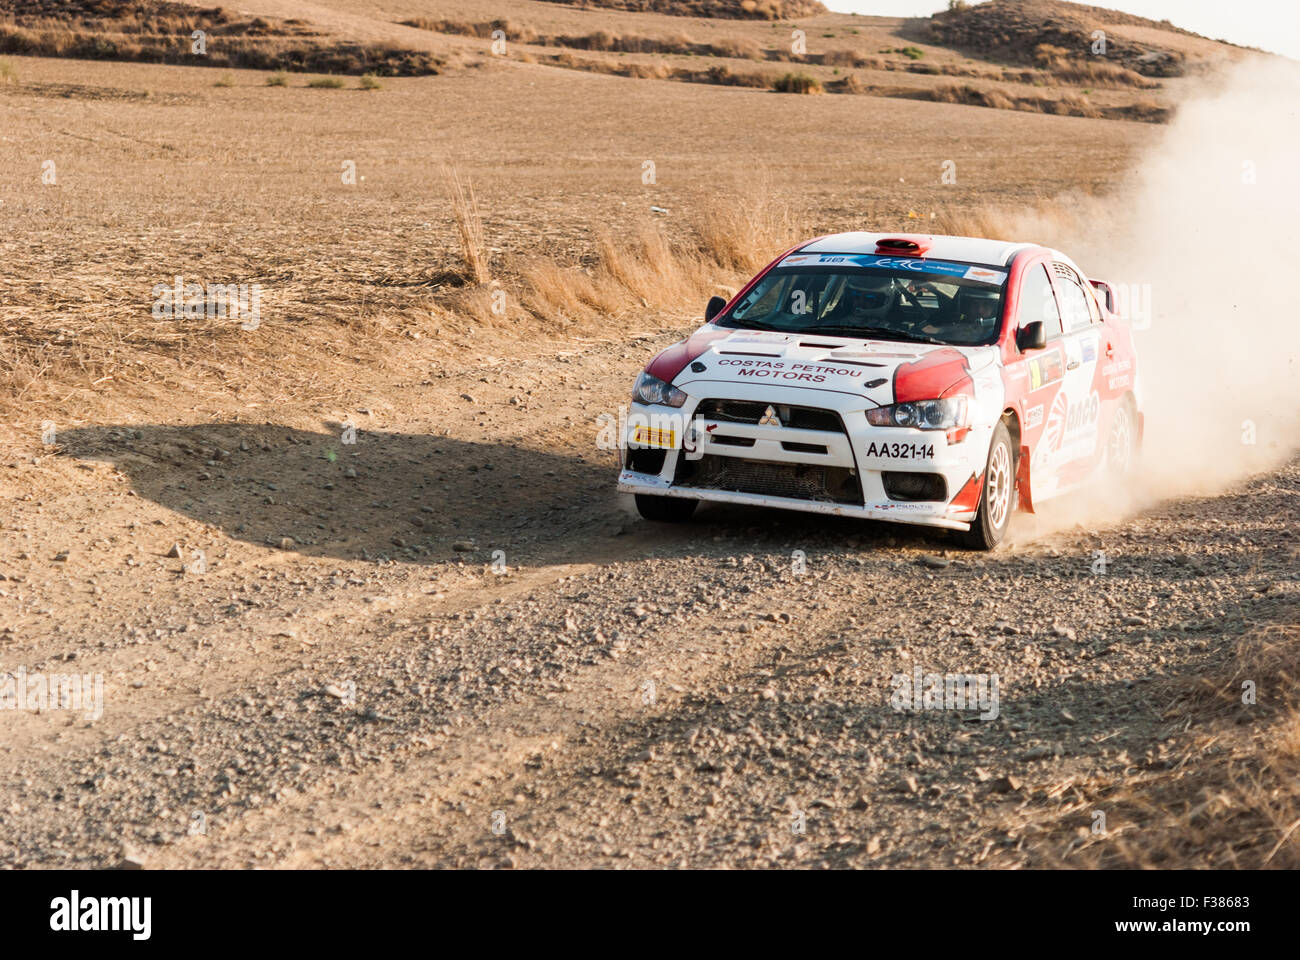 Cyprus rally 2021 nicosia betting off track betting locations rochester ny events